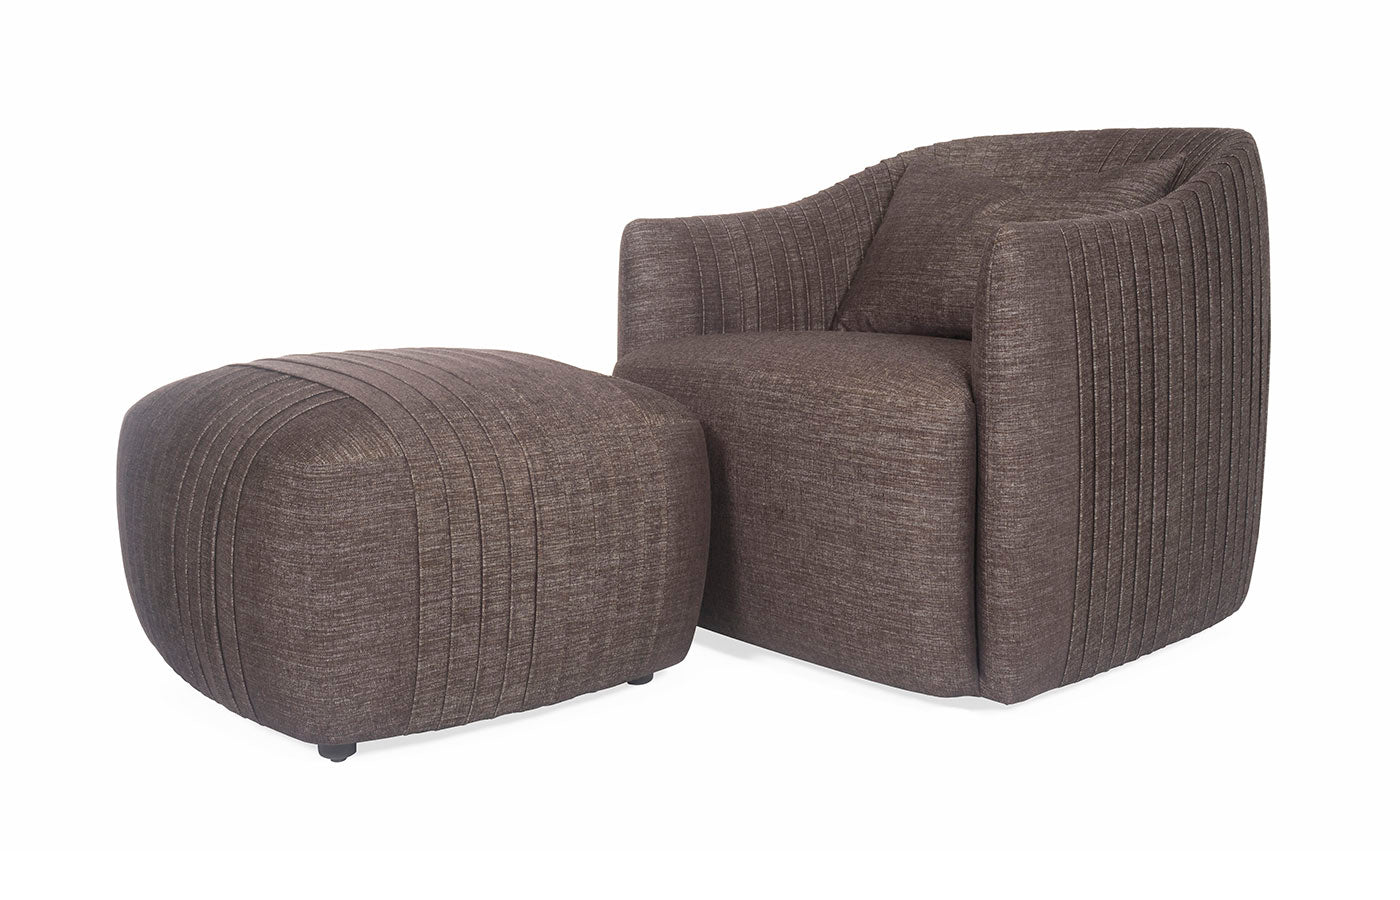 Viki Chair & Swivel Chair (with Ottoman)